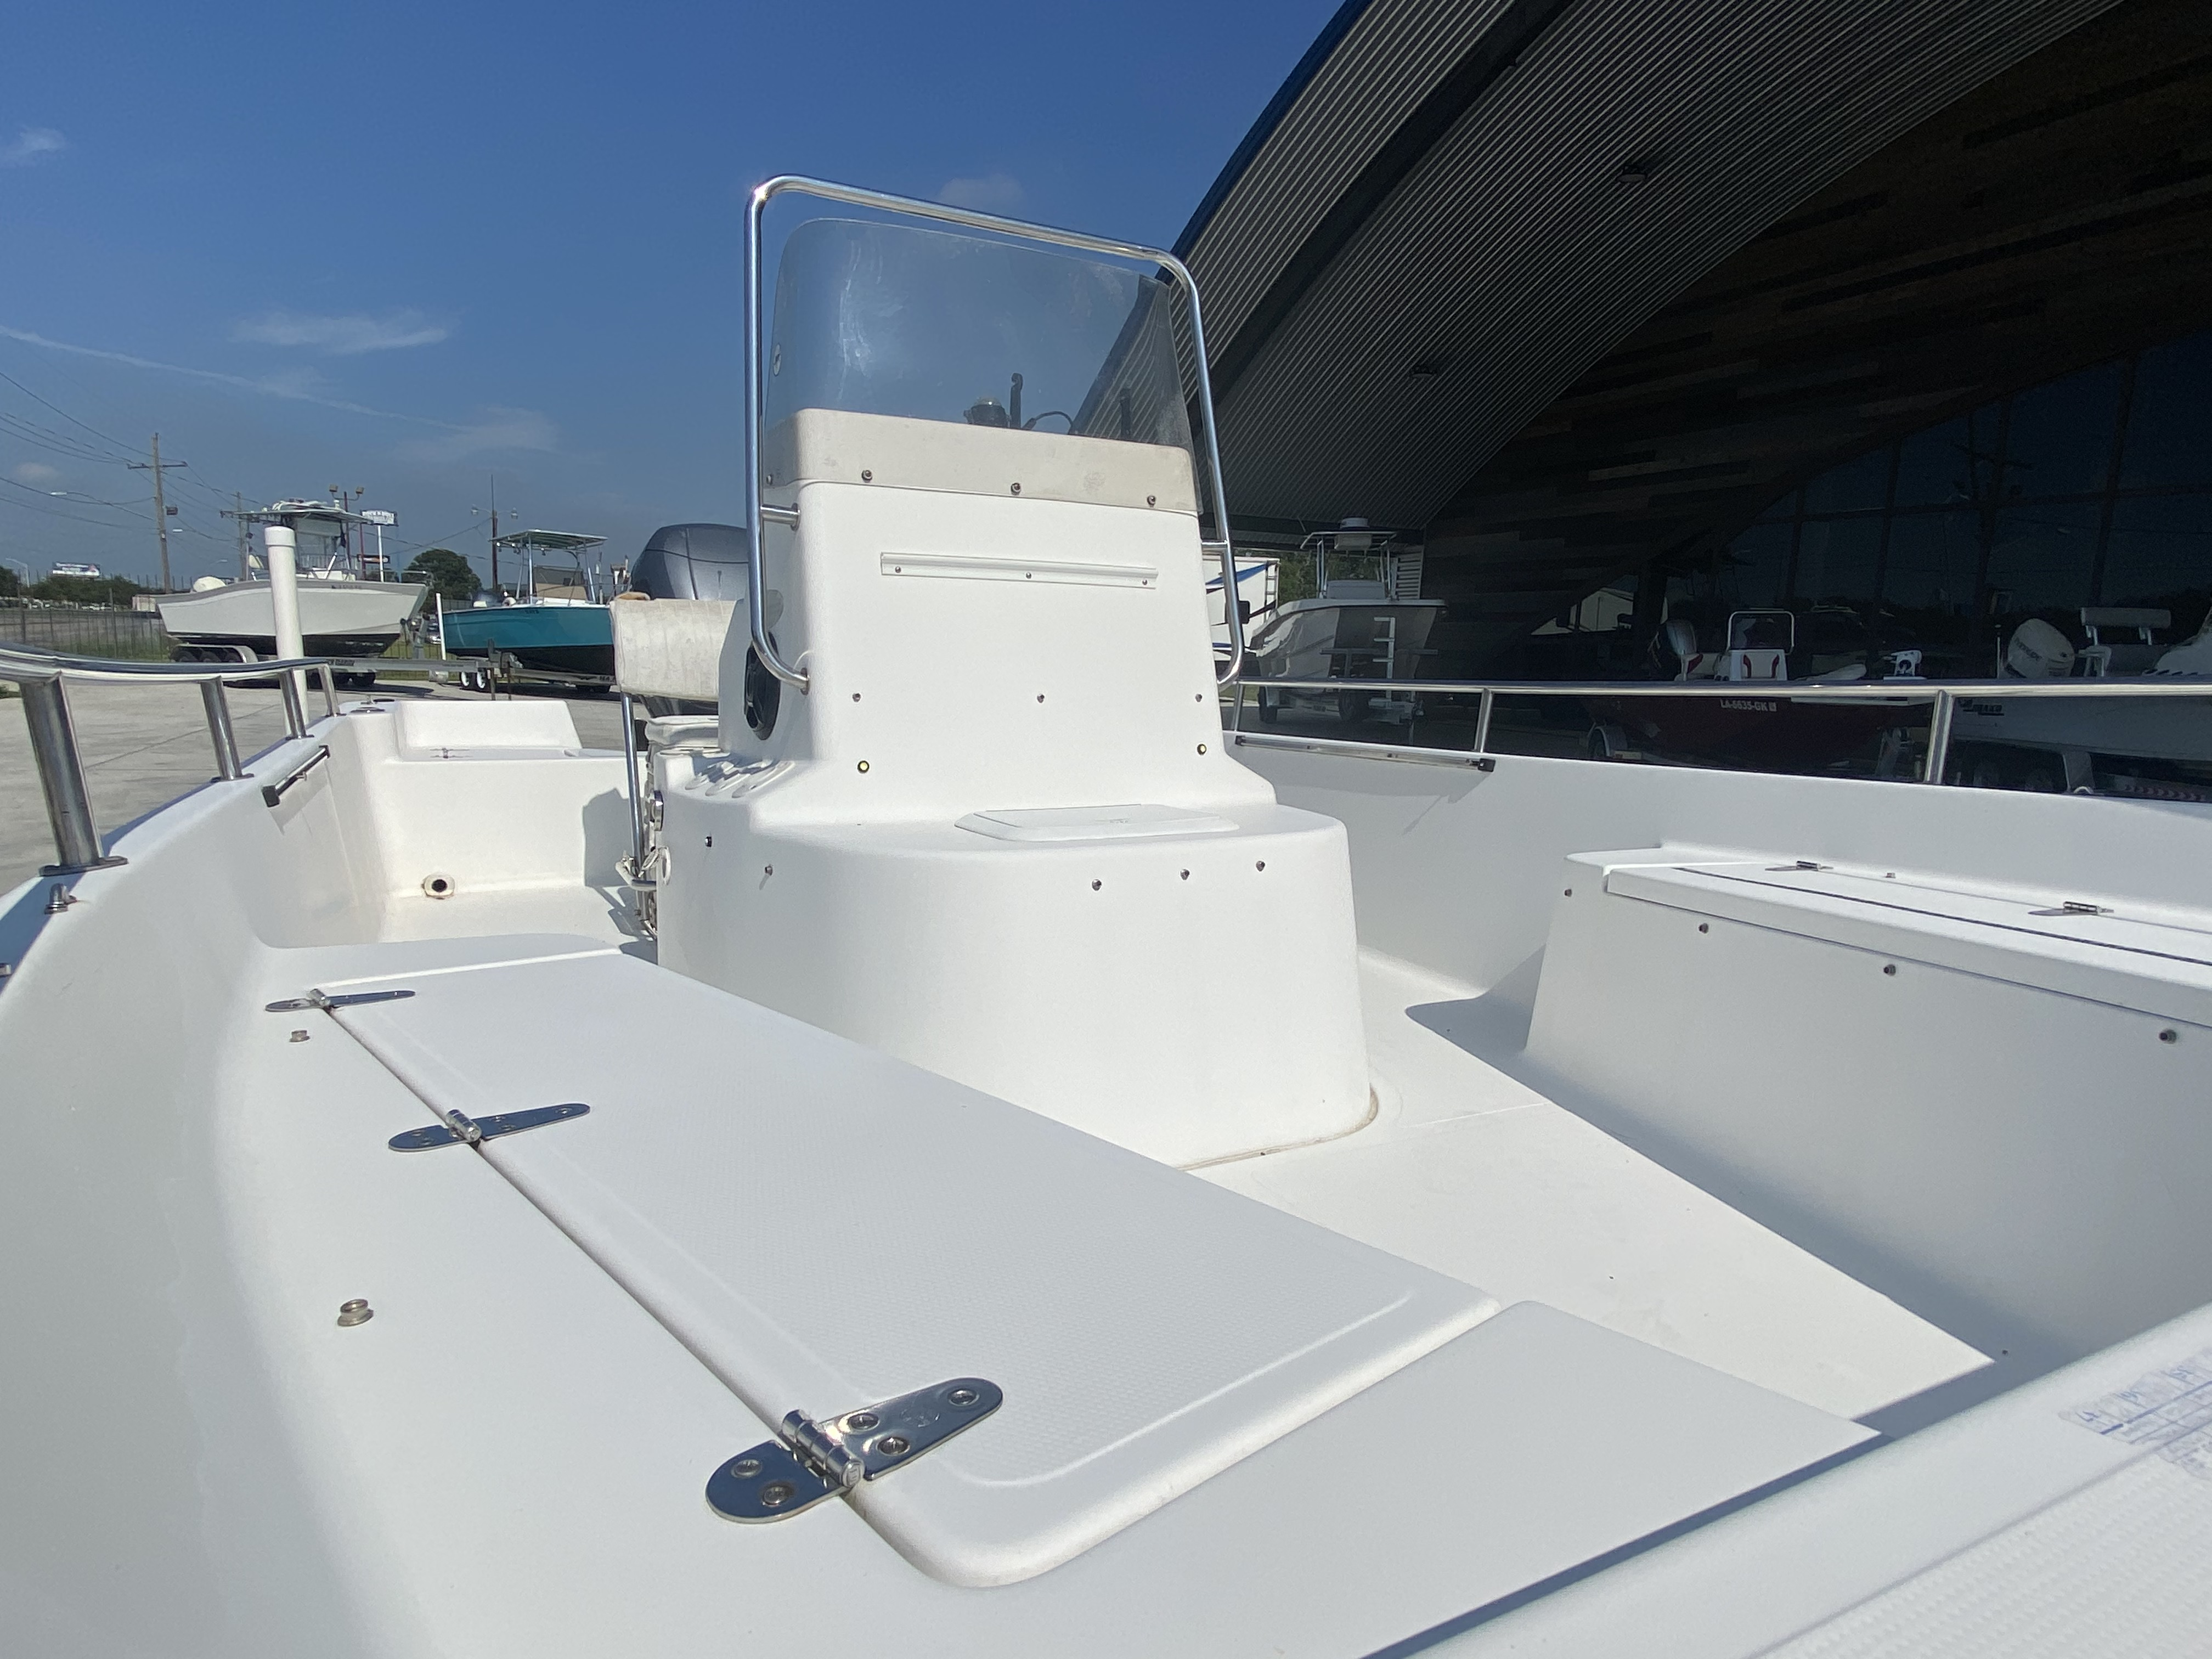 2003 Sea Pro boat for sale, model of the boat is SV2100 & Image # 9 of 12